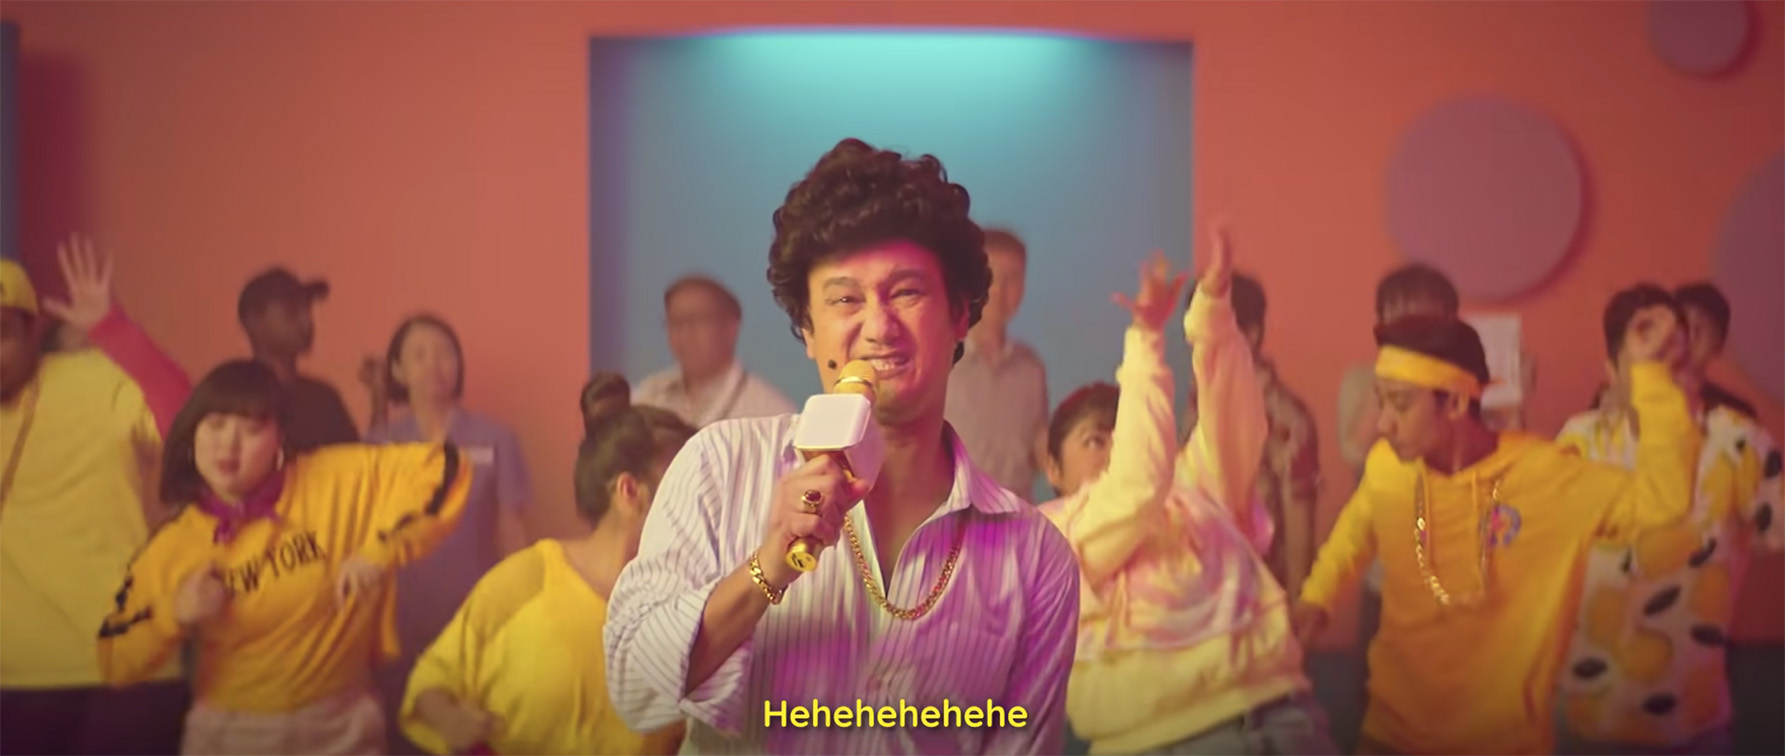 Tribal Worldwide encourages Singaporeans to go for the COVID-19 vaccination when it is offered to them via wacky 2-min music video